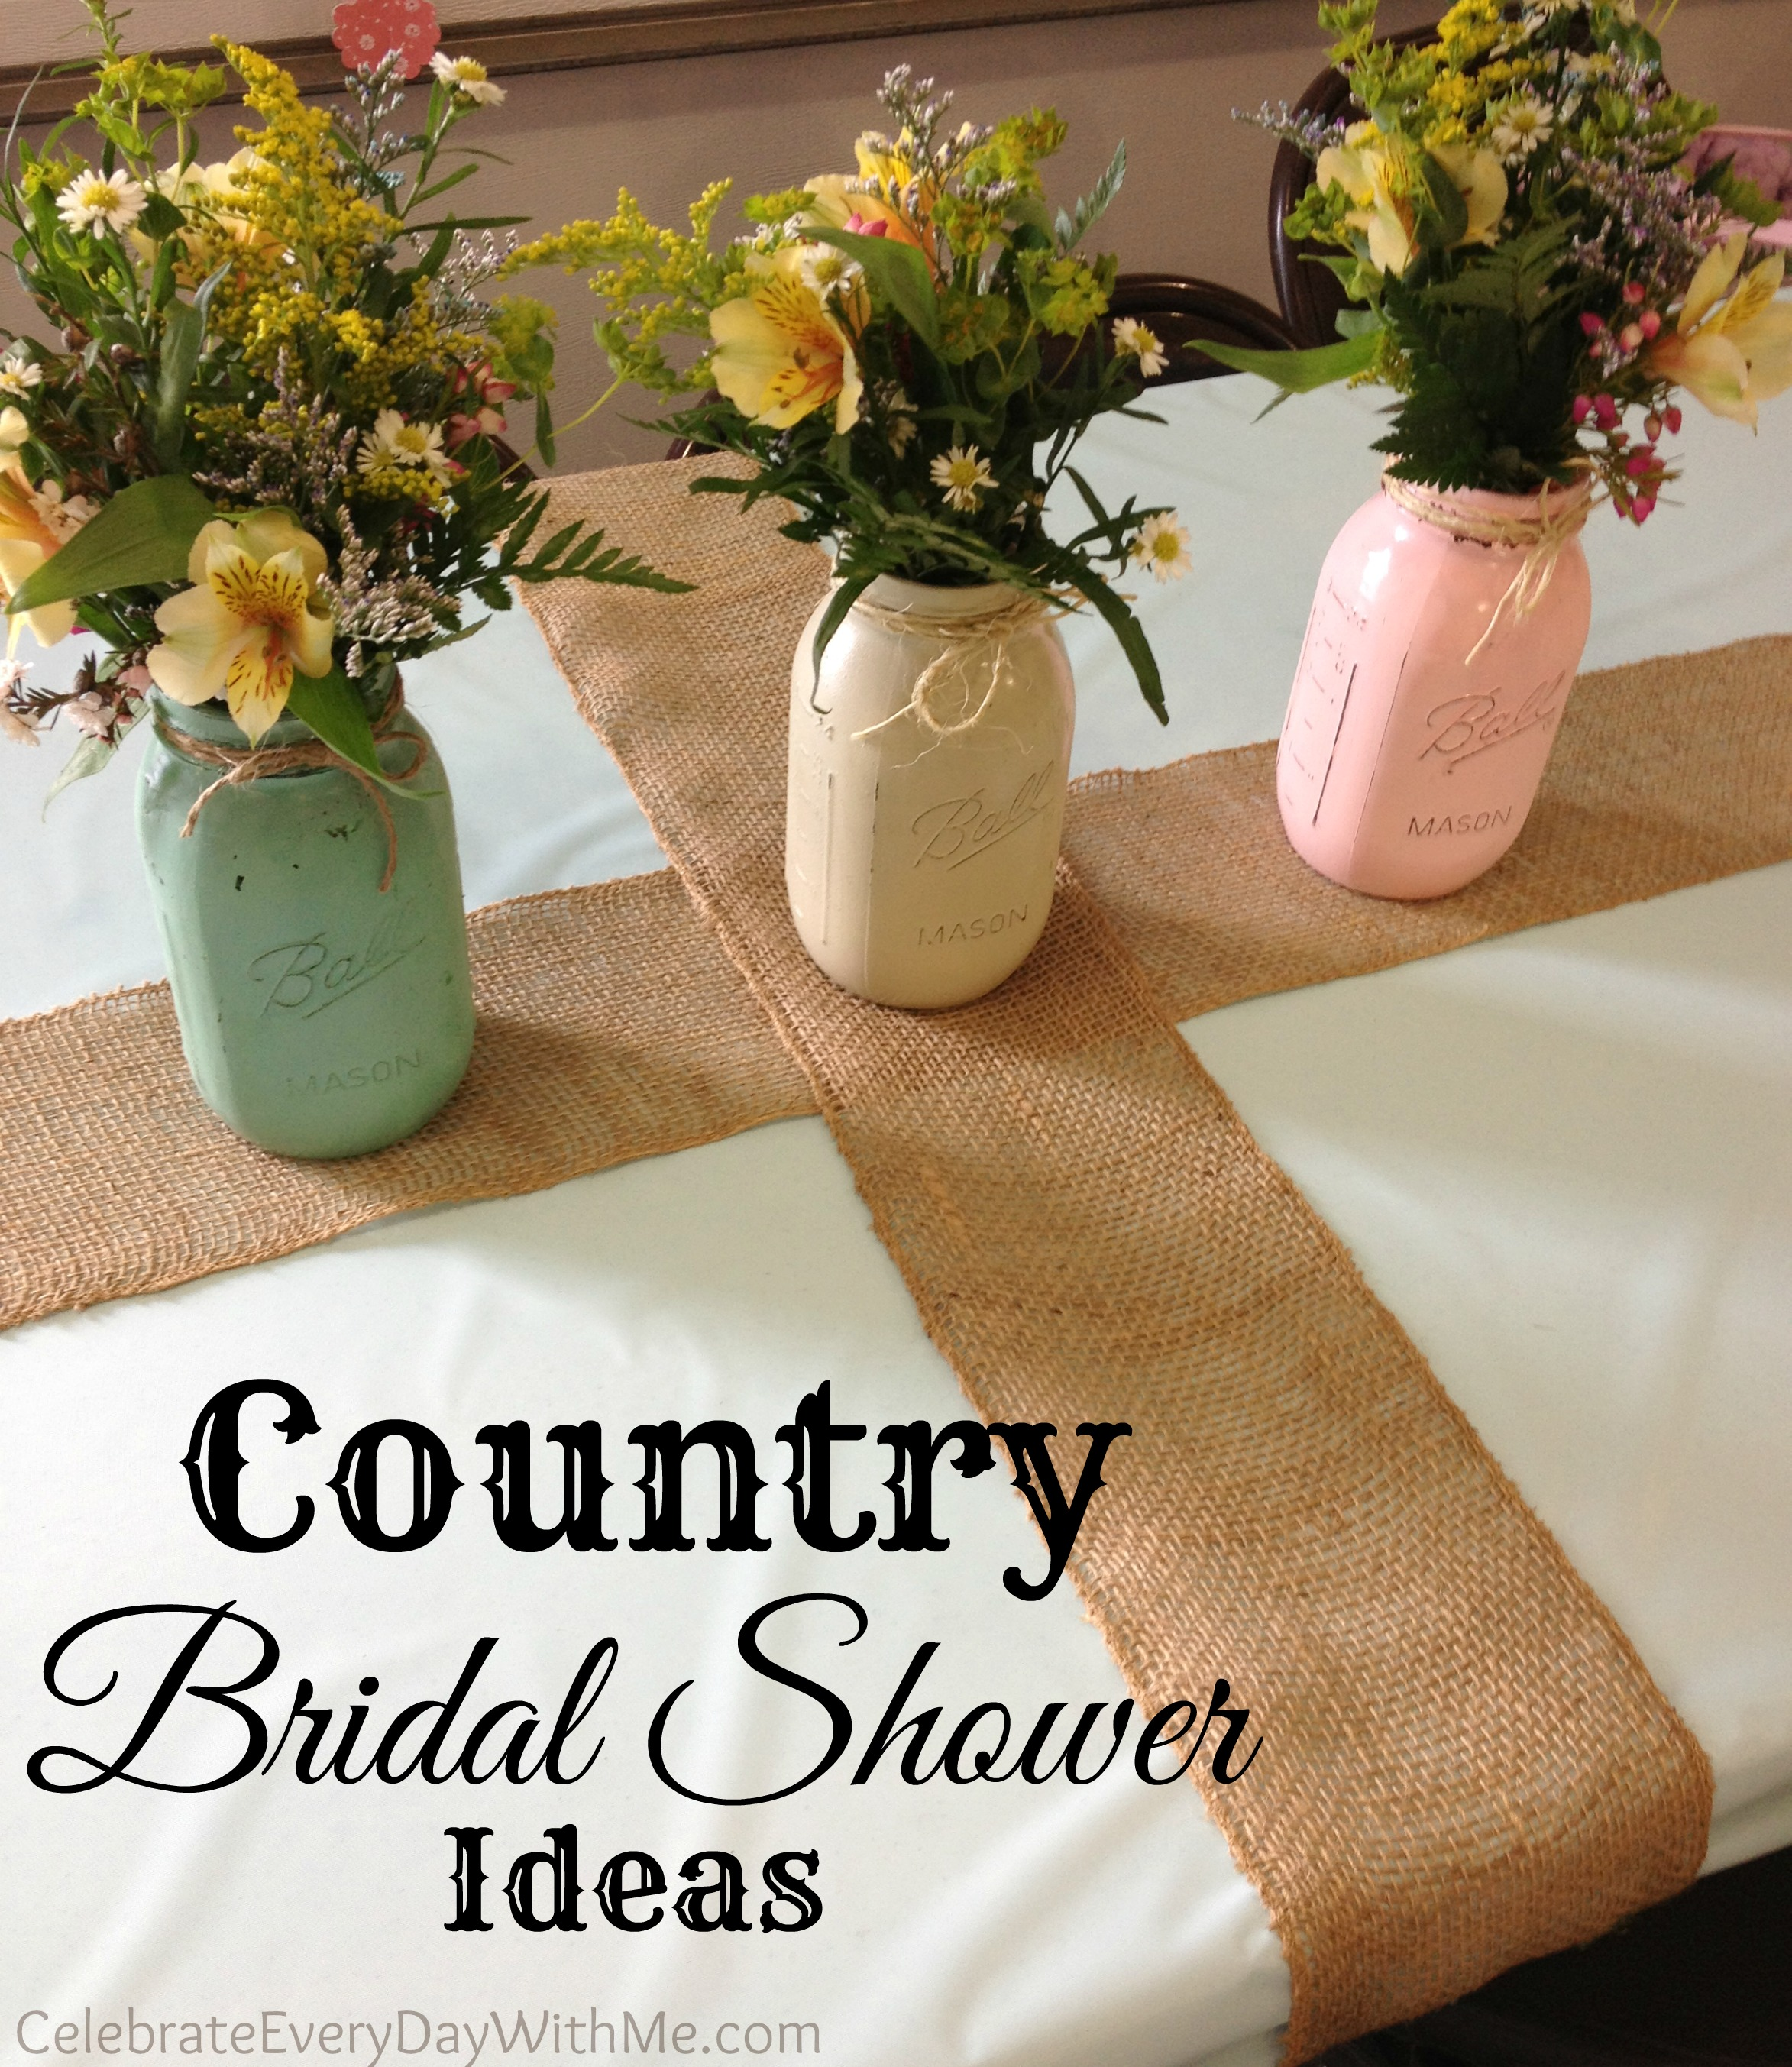 Country Bridal Shower Ideas Celebrate Every Day With Me